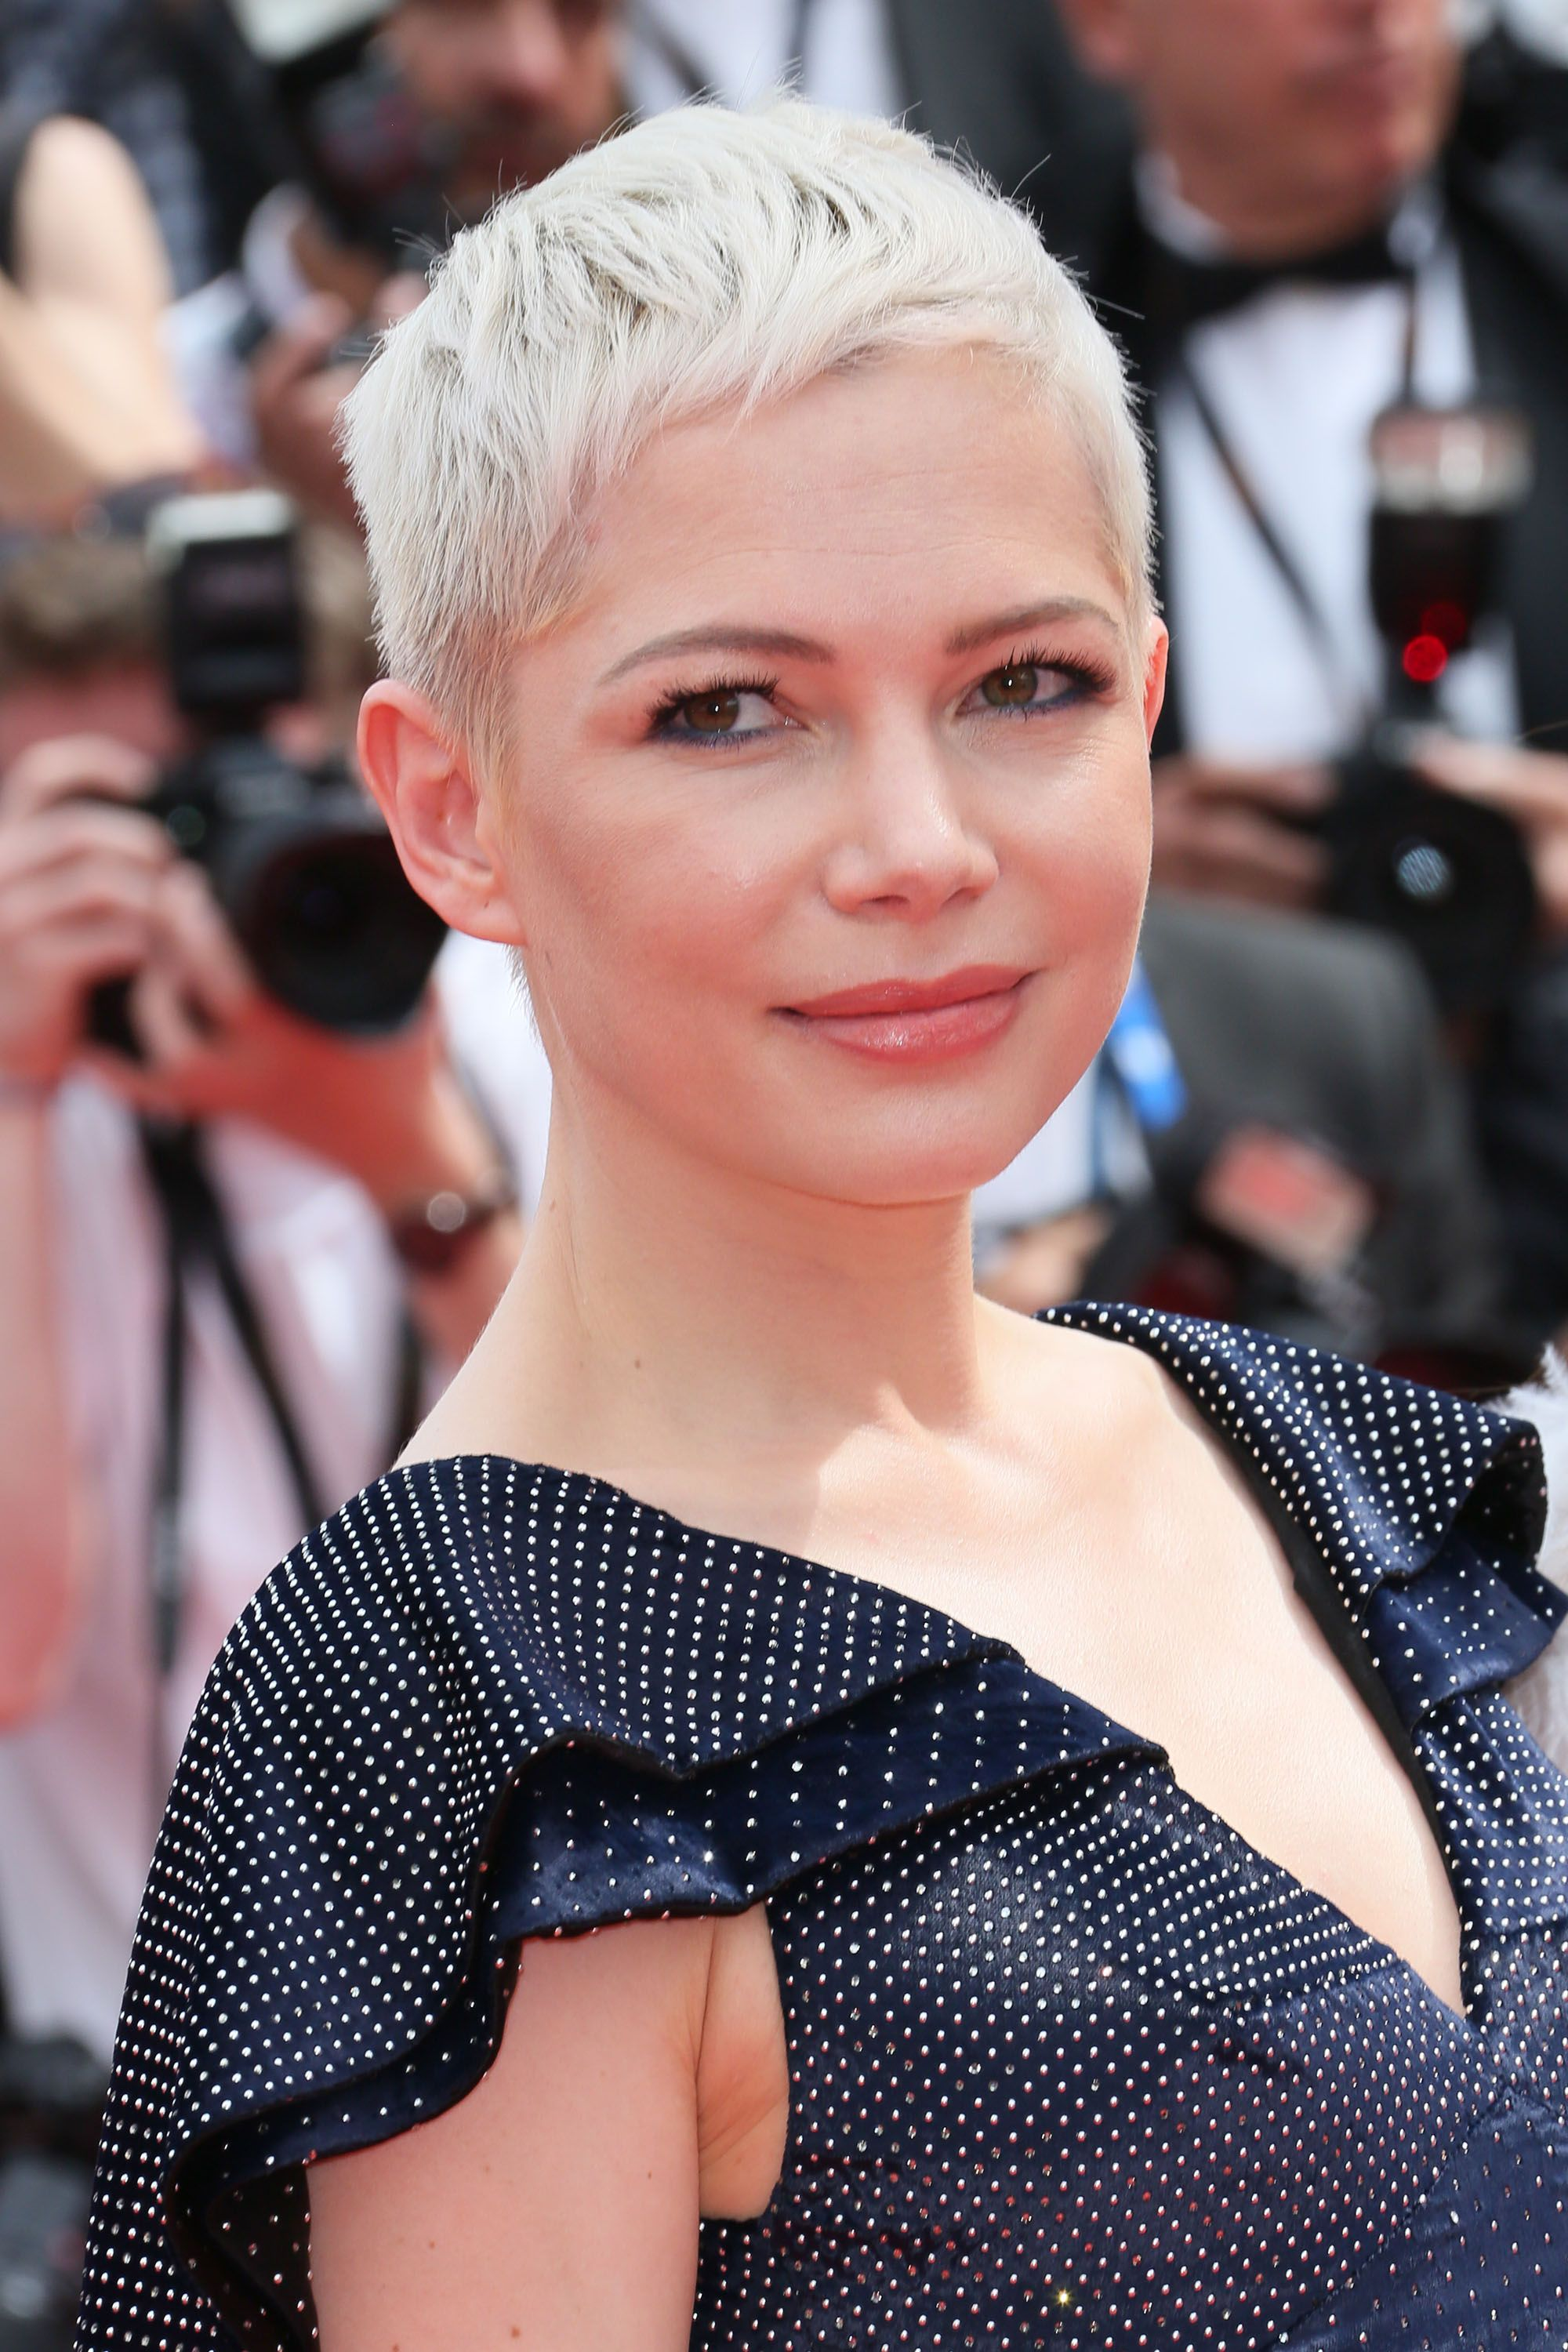 Pixie Haircuts For Round Faces 2019